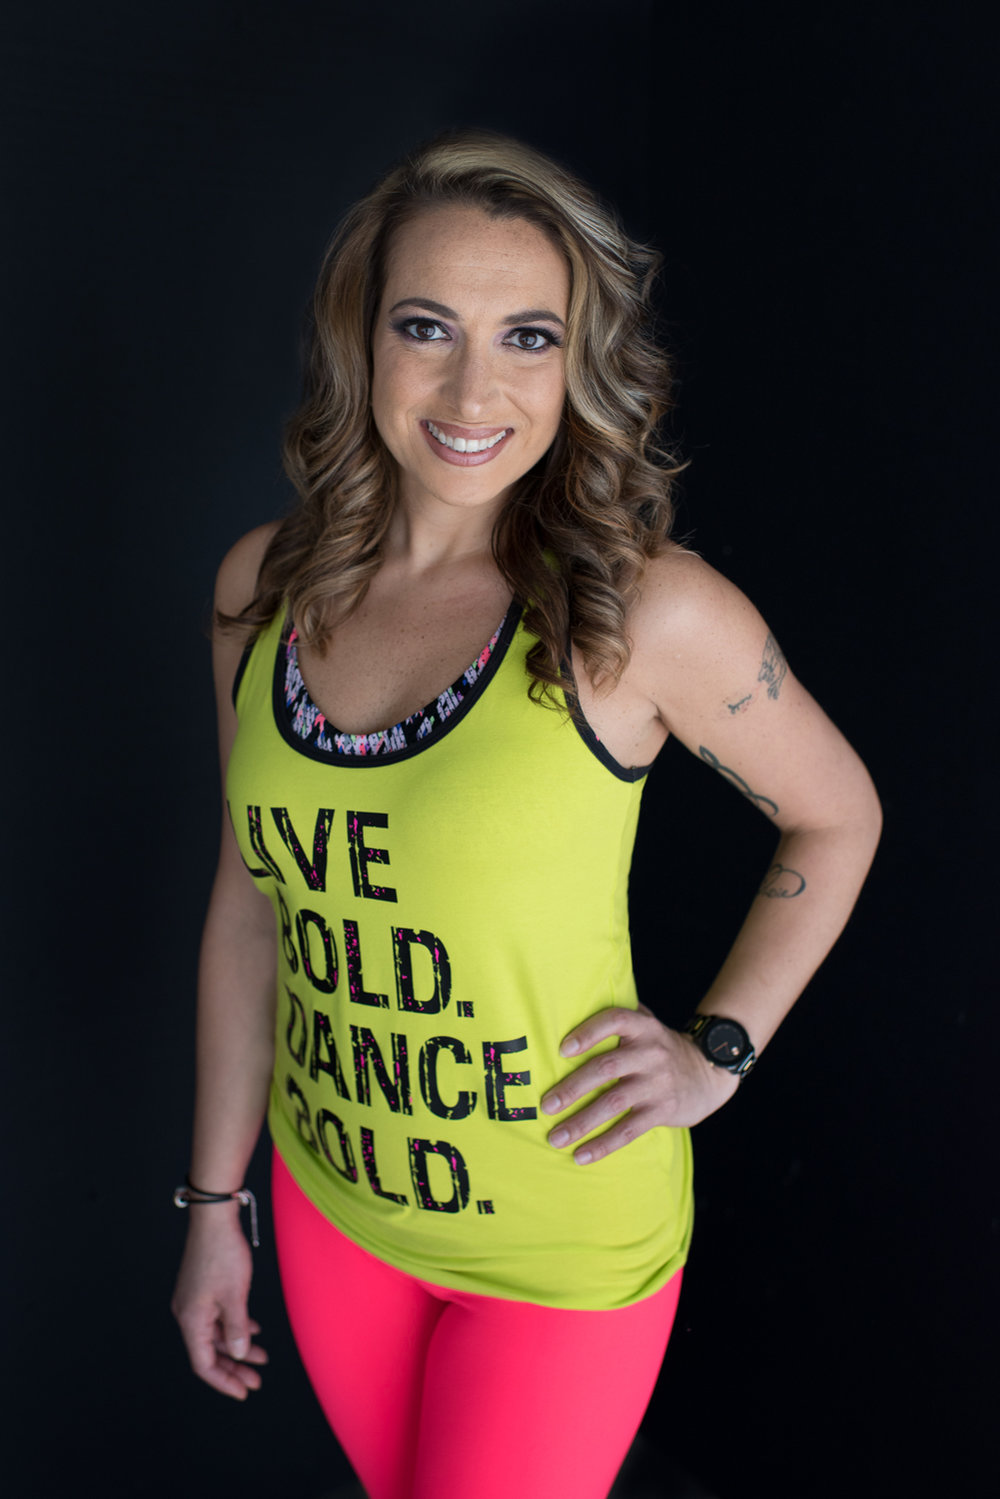 Fitness instructor headshots D. Phillips Photography